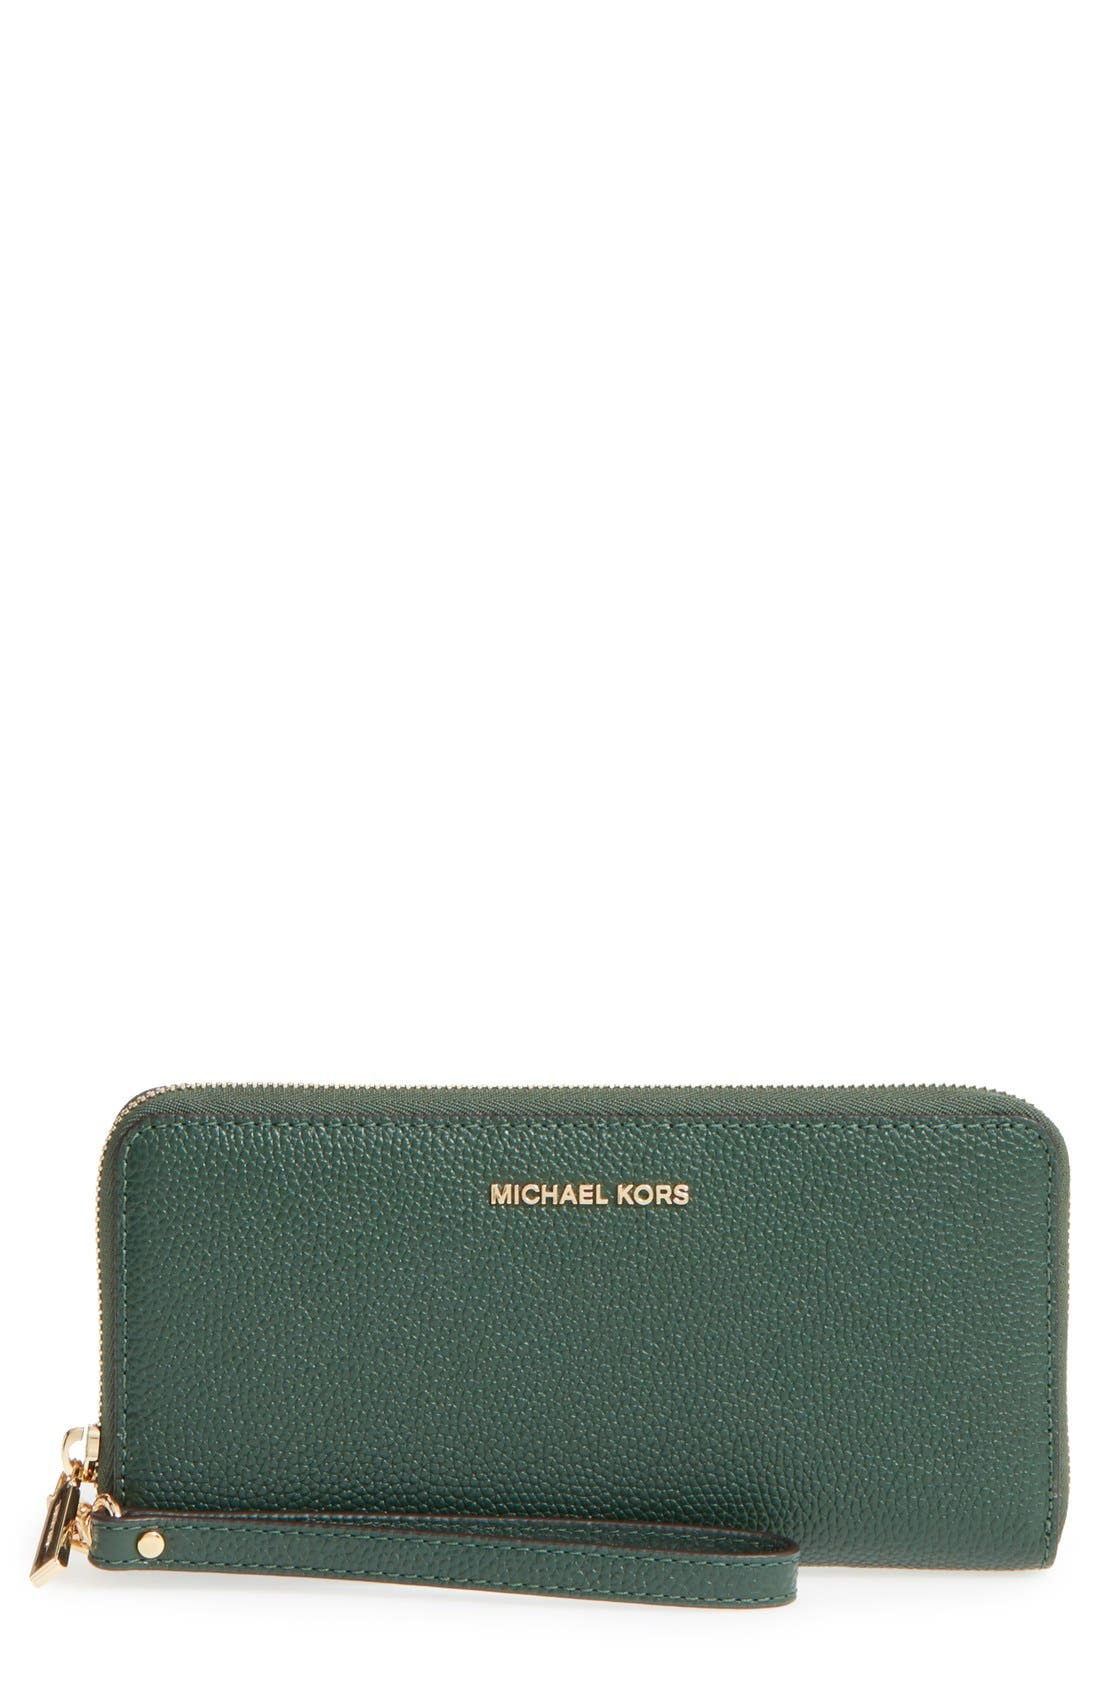 'Mercer' Leather Continental Wallet,                             Main thumbnail 6, color,